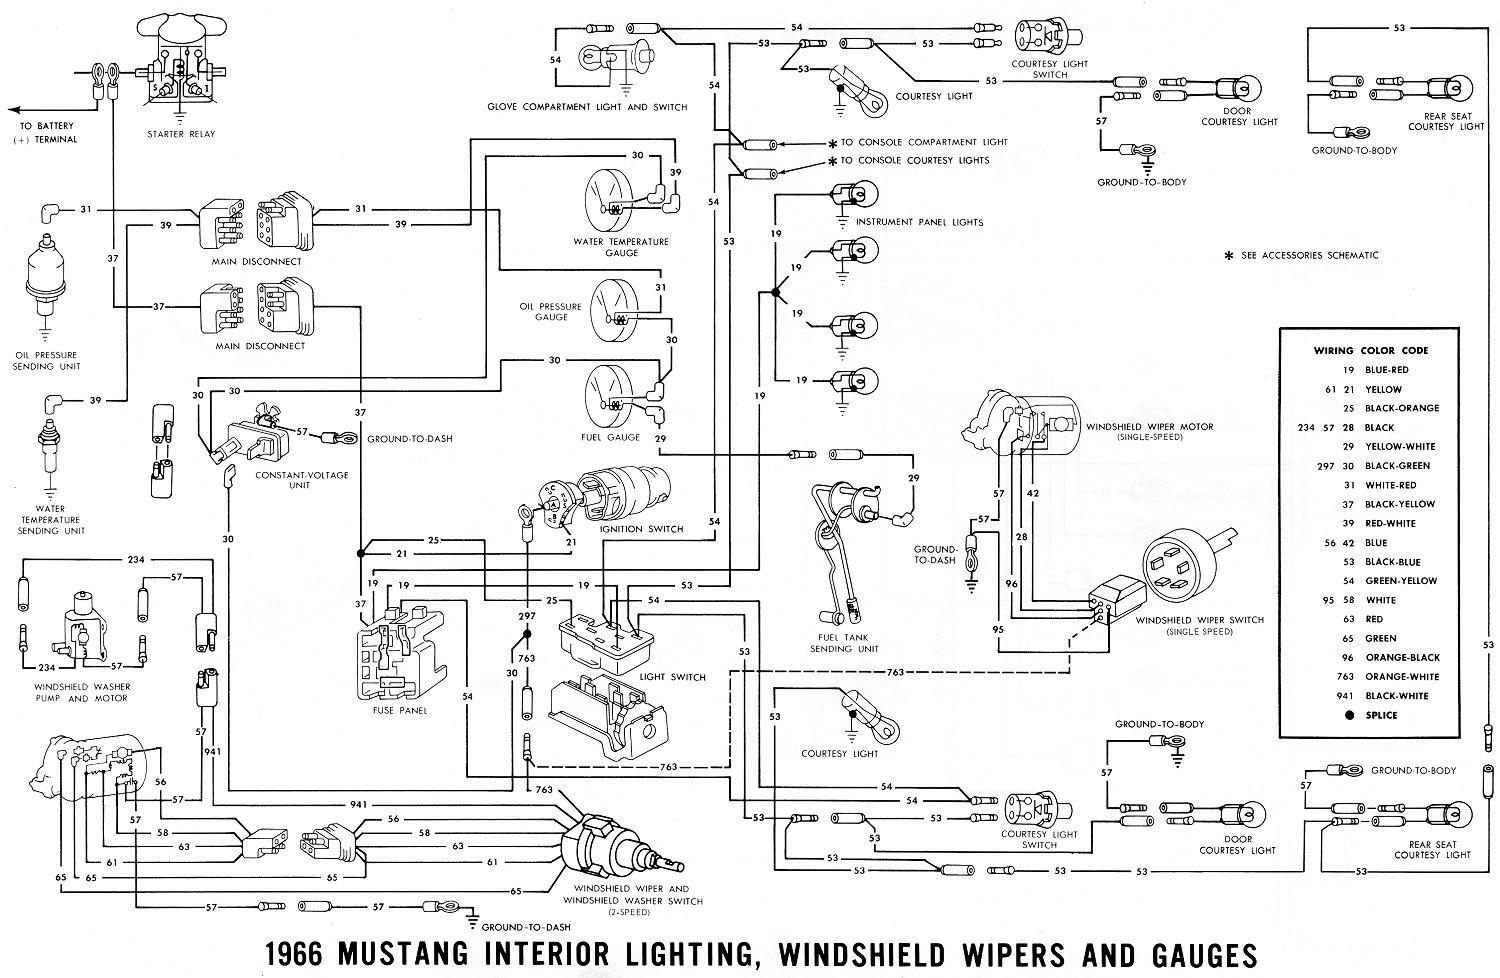 lelu's 66 mustang: 1966 mustang wiring diagrams 1966 mustang electrical diagrams #12